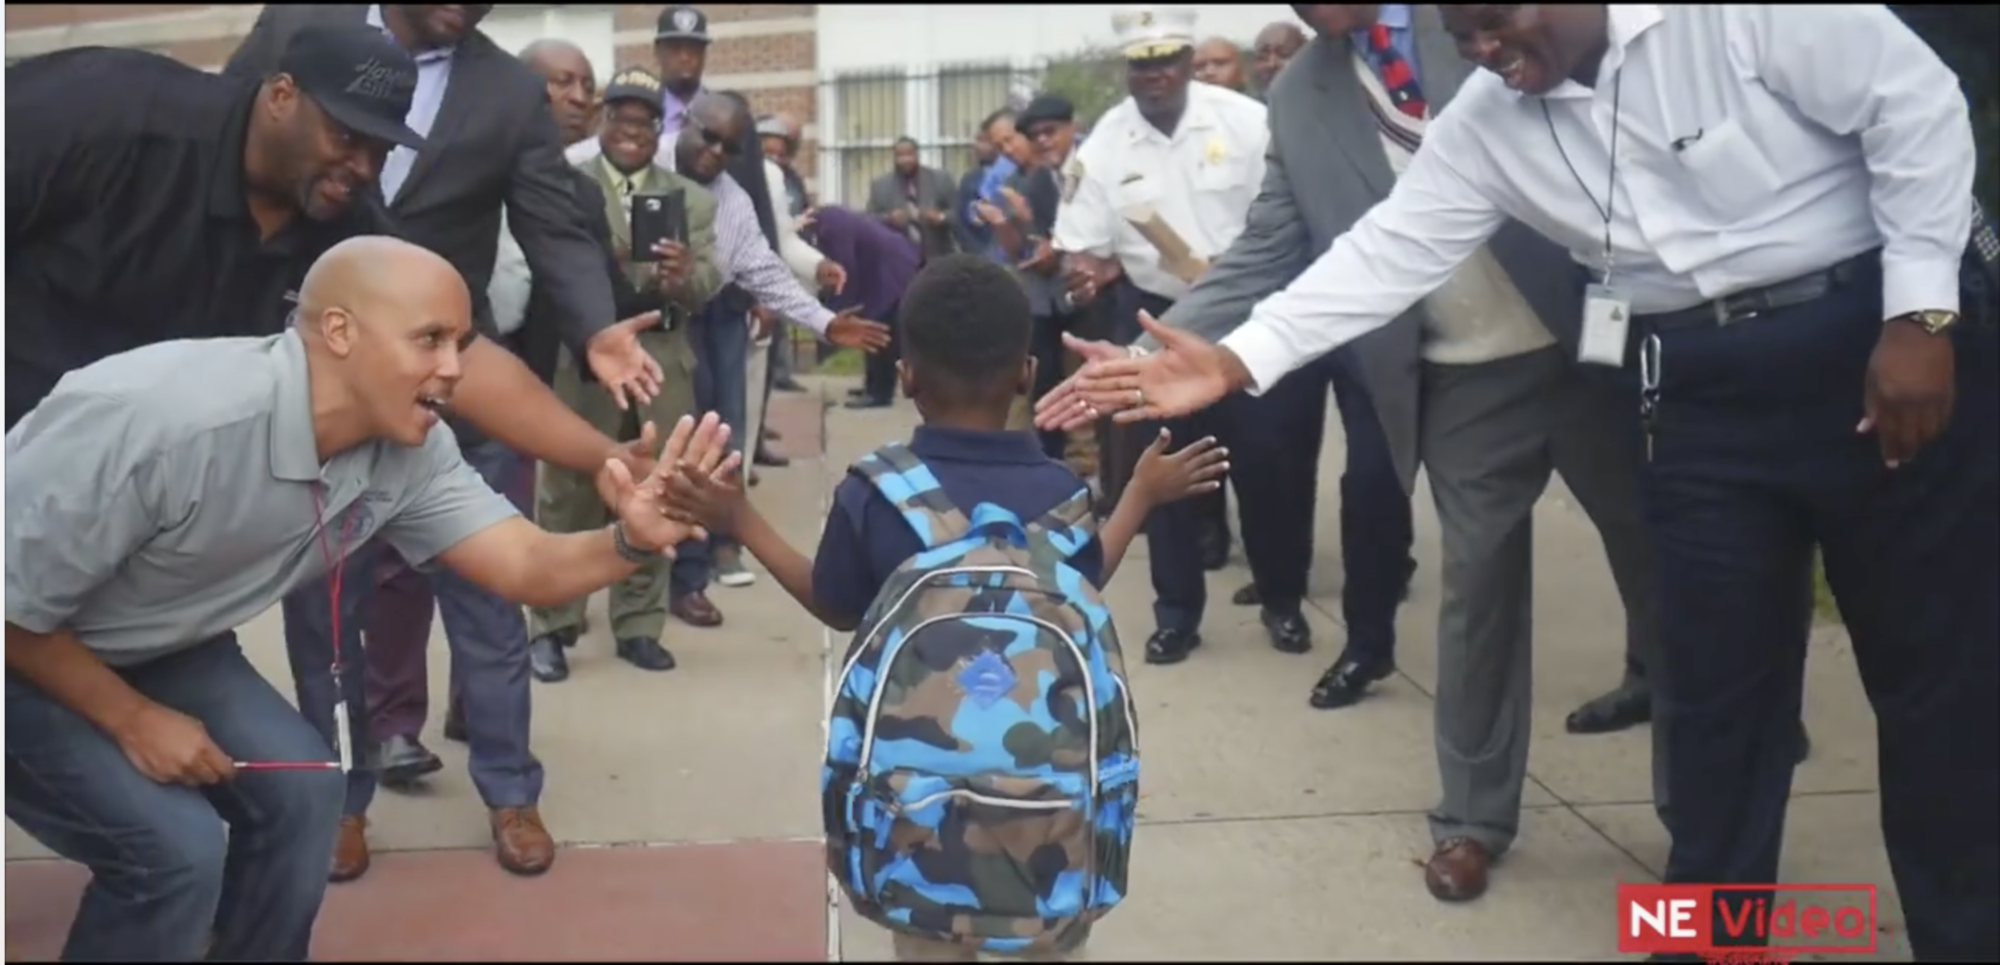 'Calling All Brothers' Looking For 200 Men To Greet Teachers, Students In Hartford